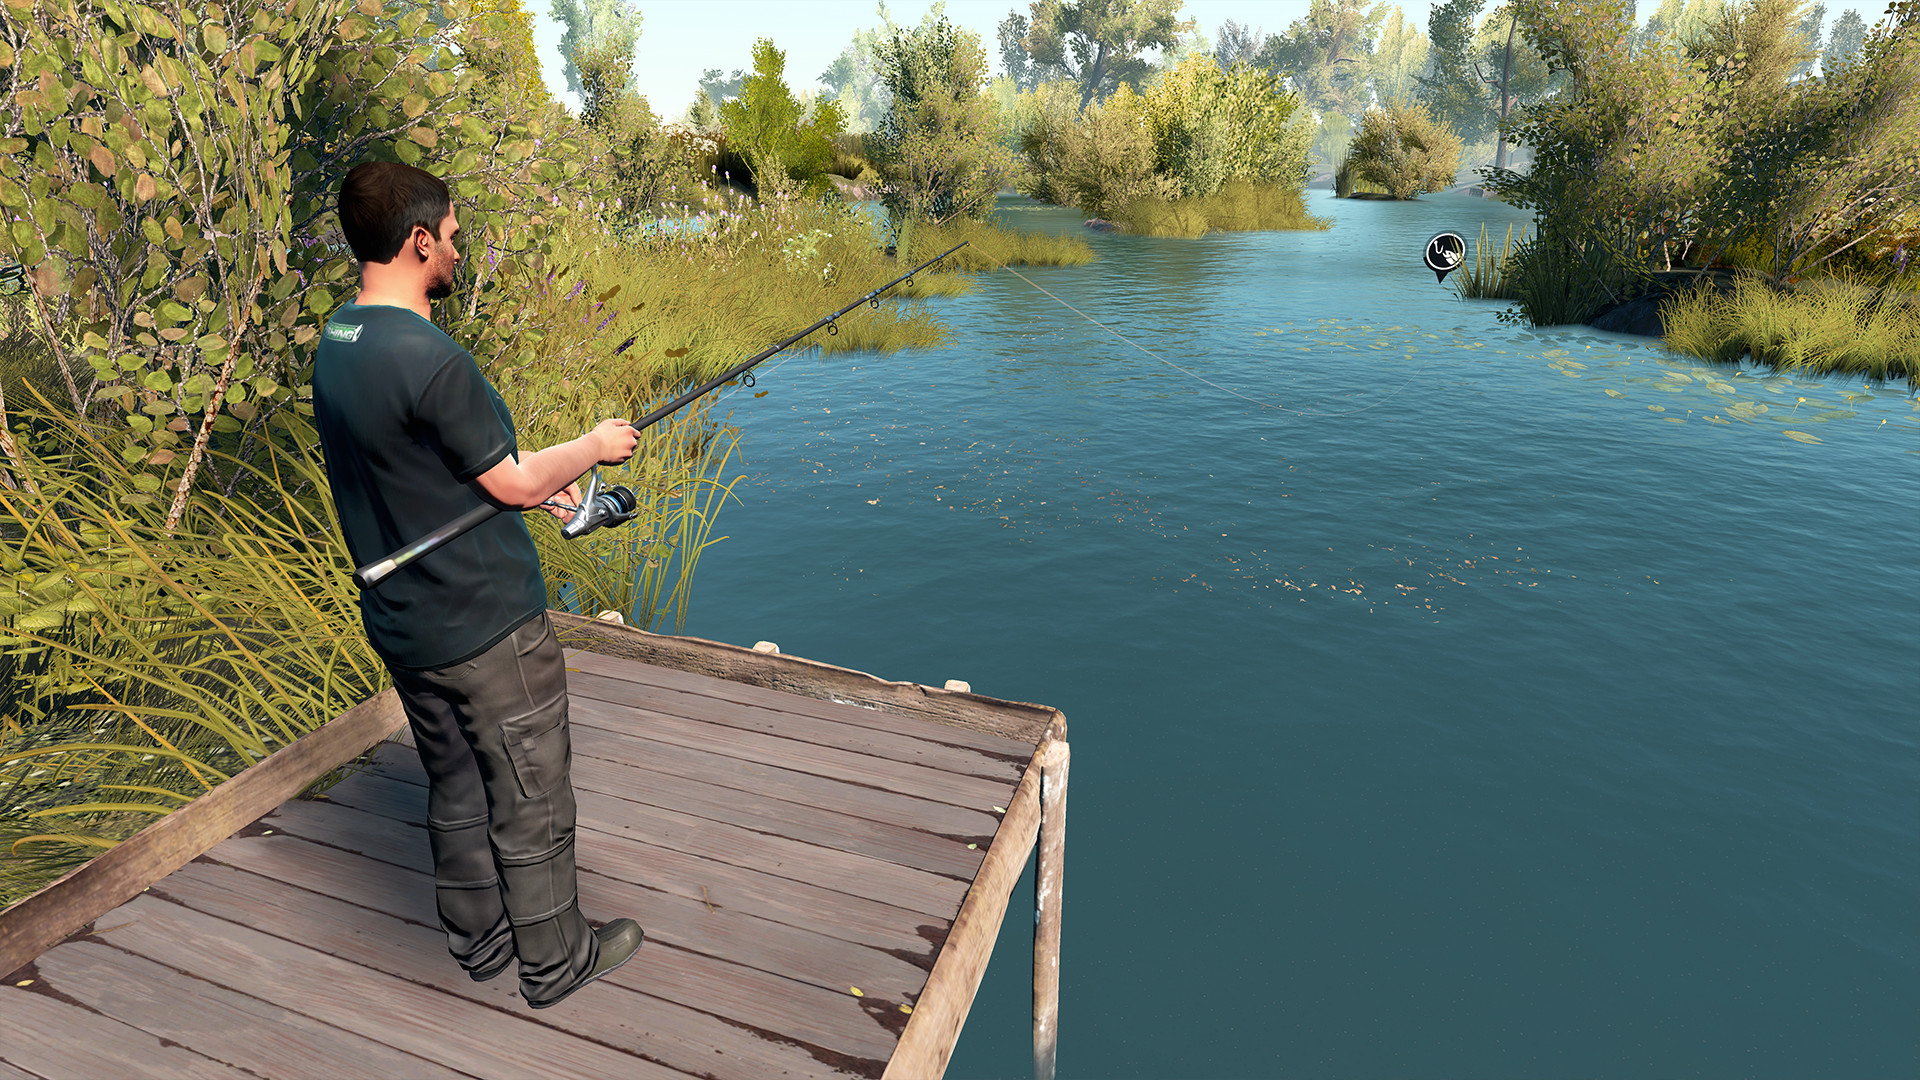 Euro Fishing 2015 (CODEX) - Full Oyun indir